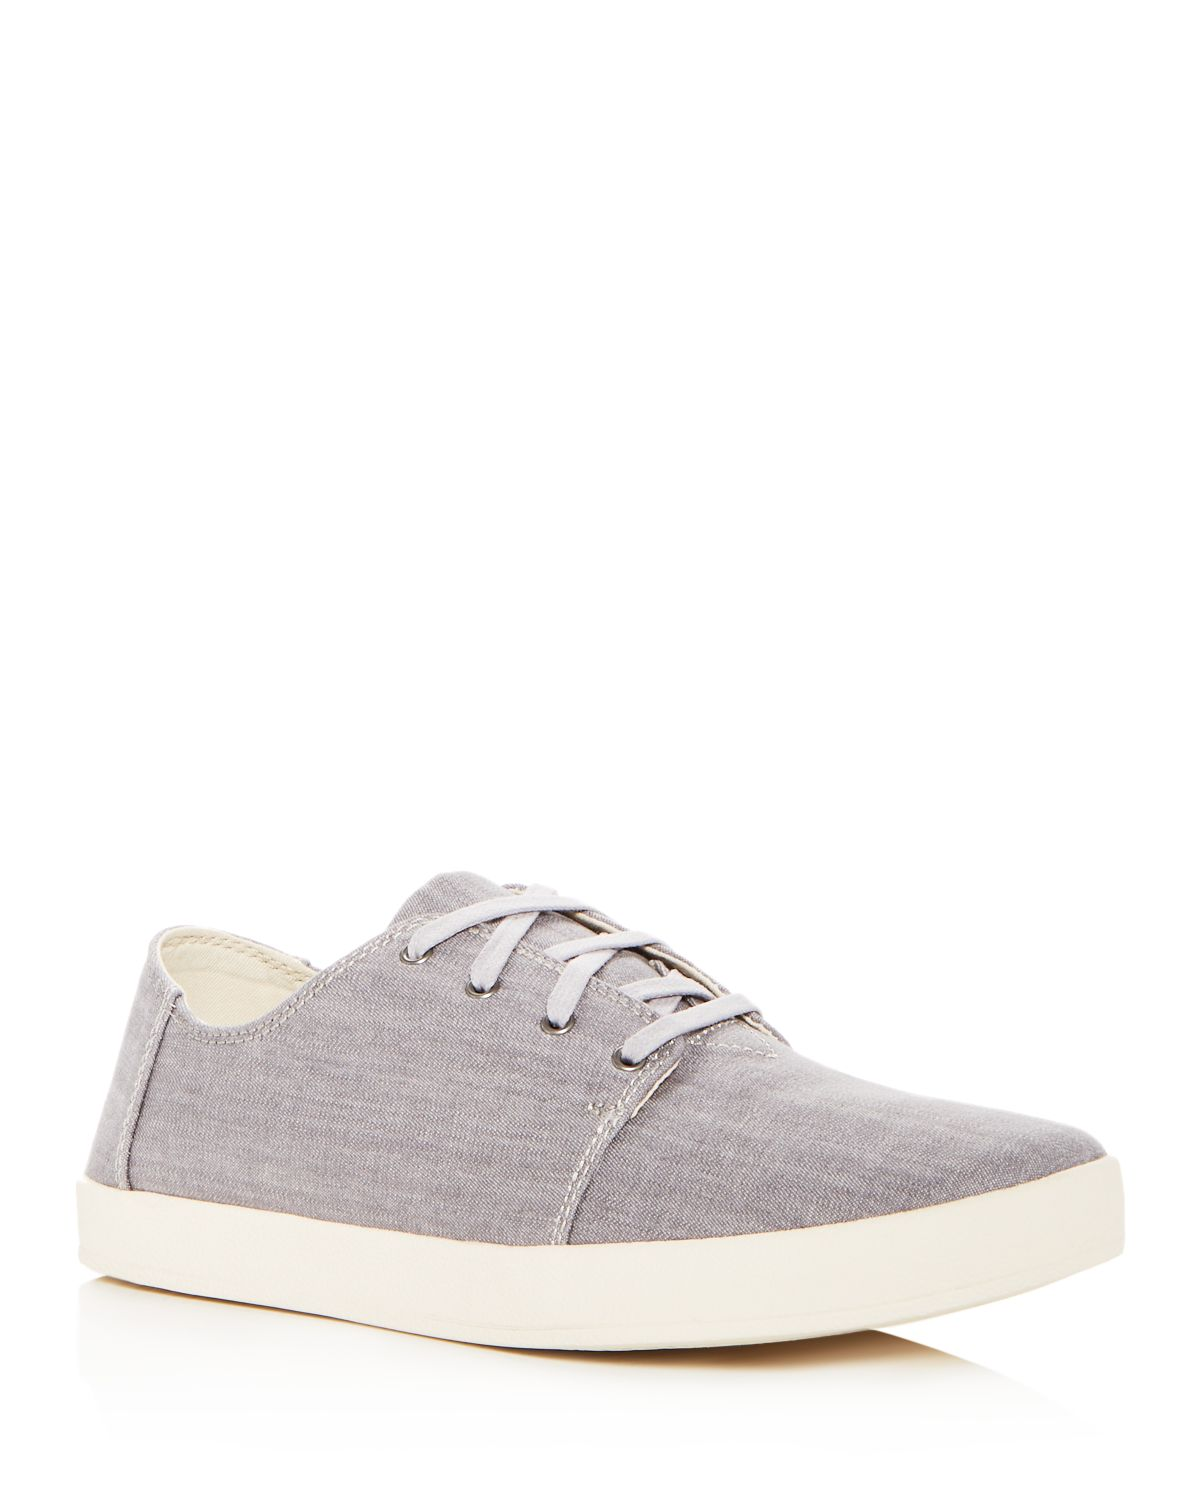 TOMS Men's Payton Denim Lace Up Sneakers